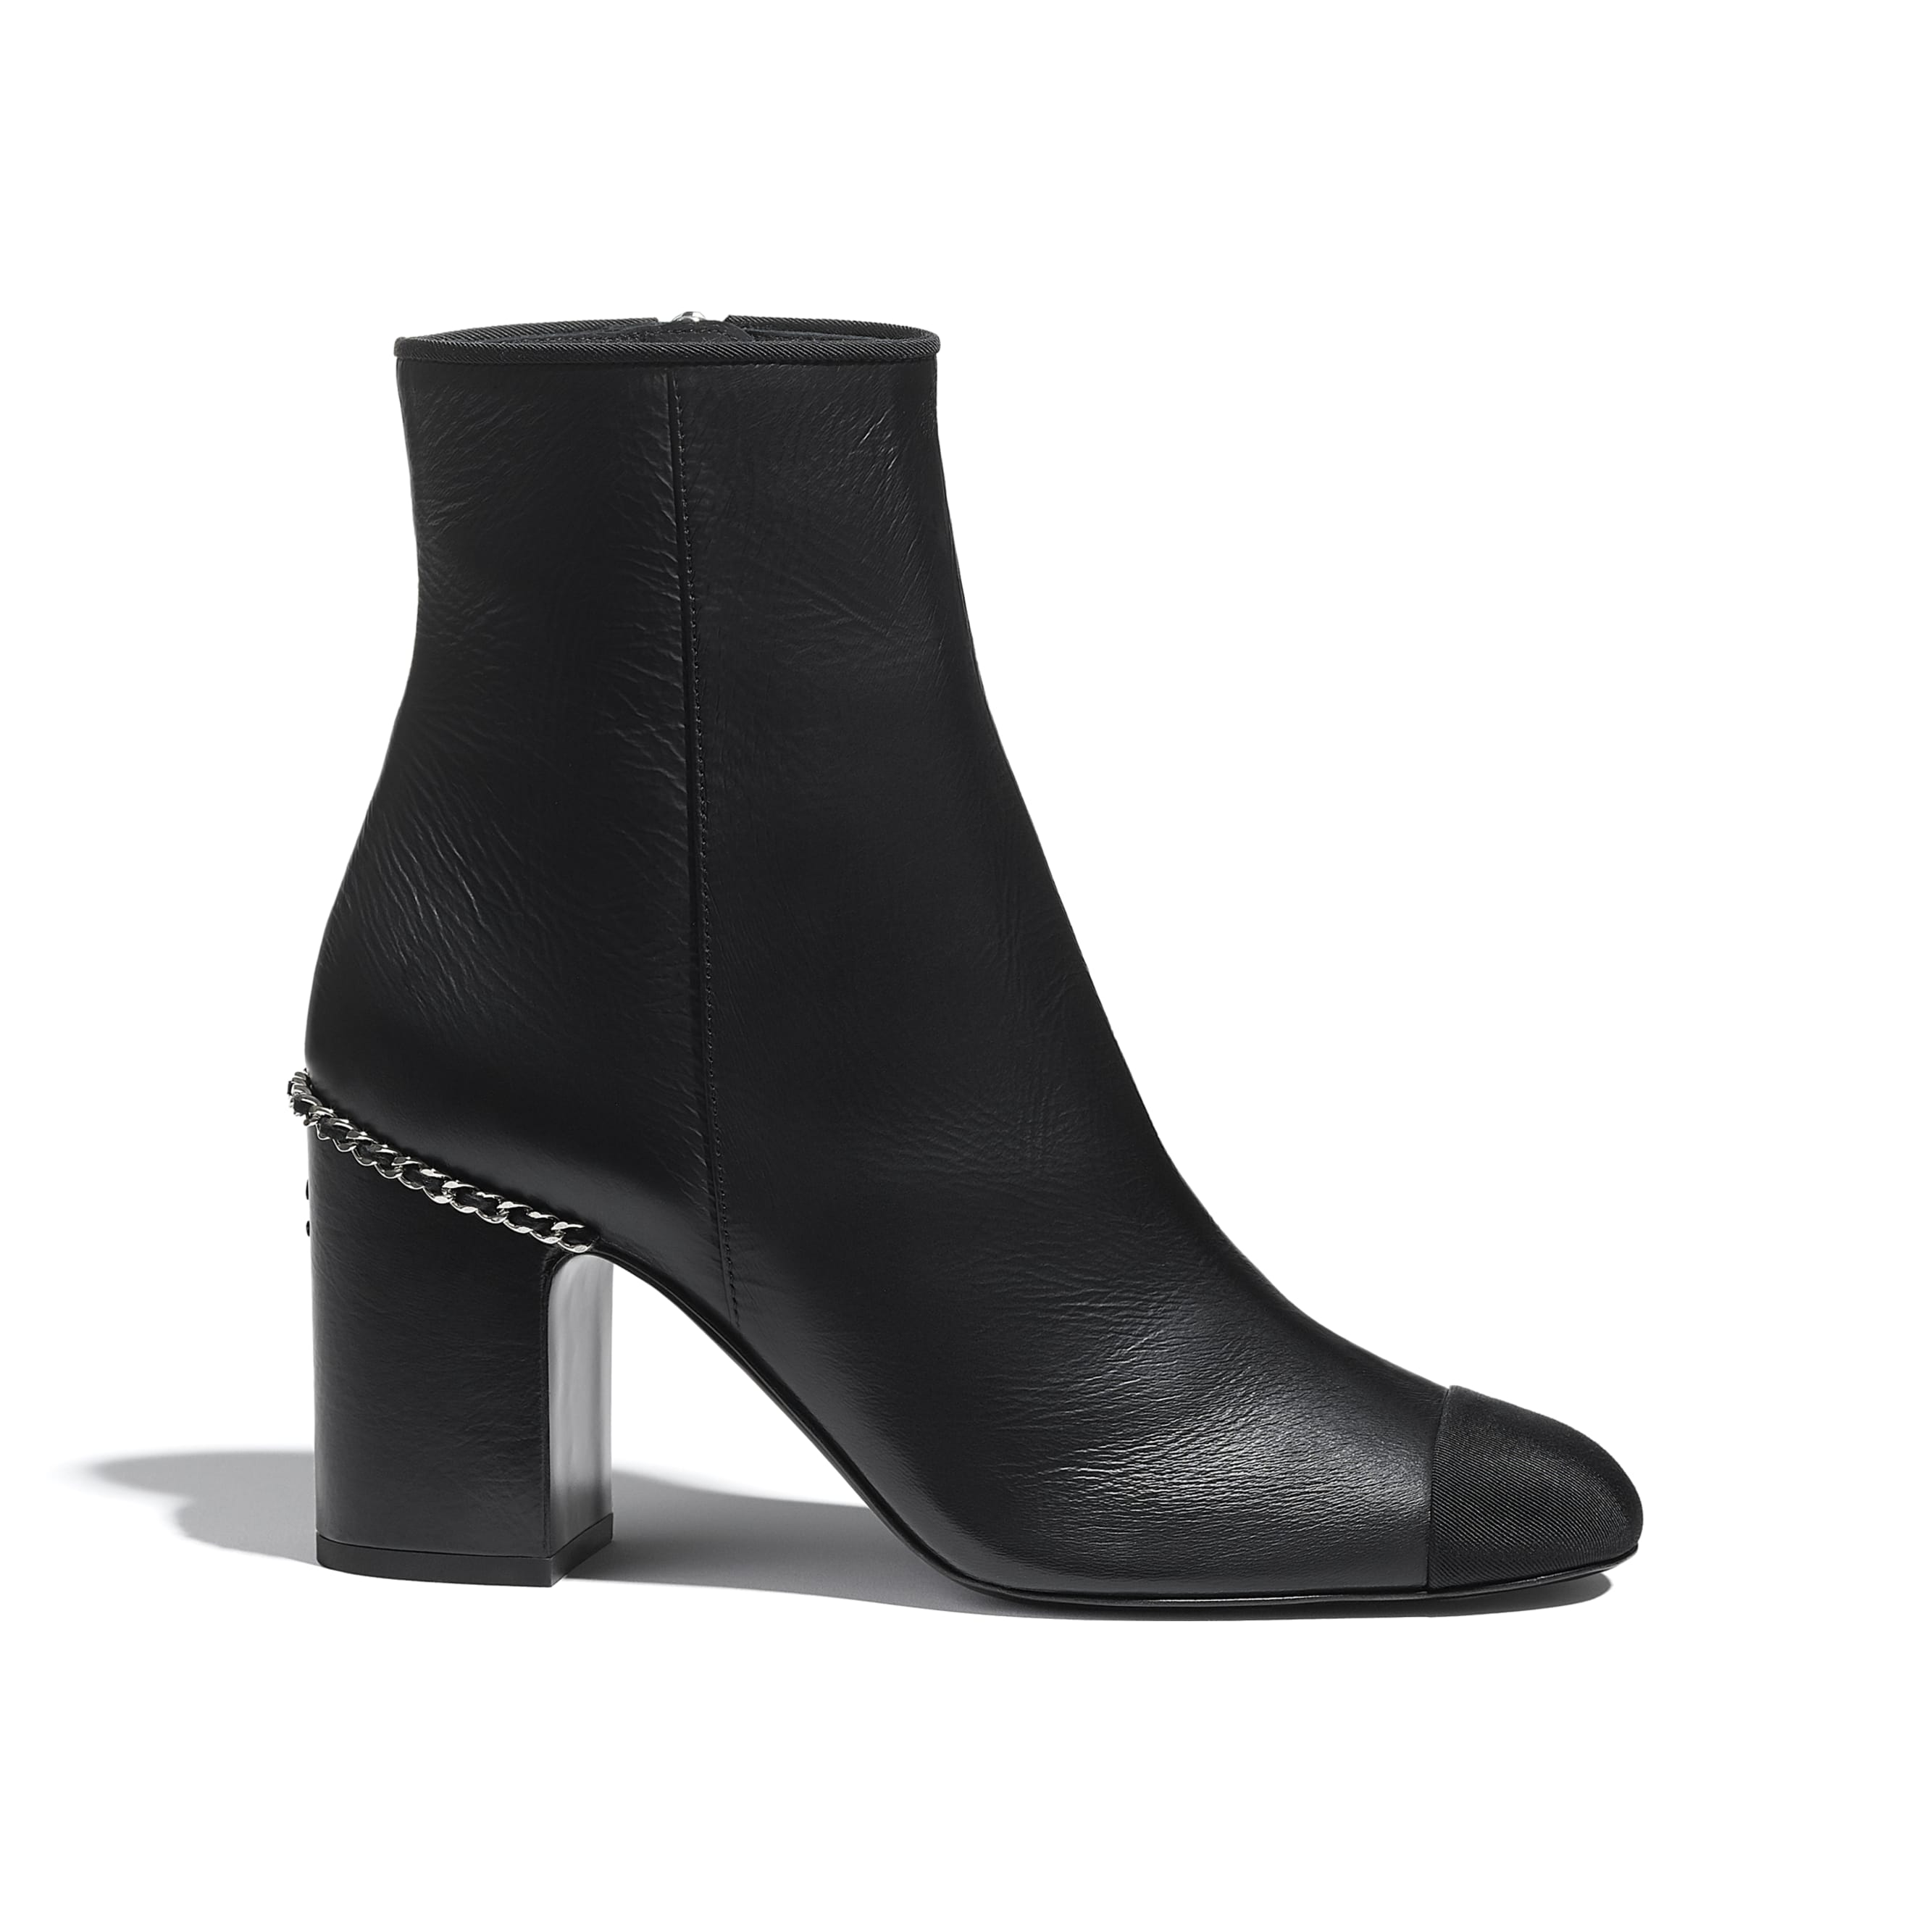 Ankle Boots - Black - Laminated Lambskin & Grosgrain - CHANEL - Default view - see standard sized version